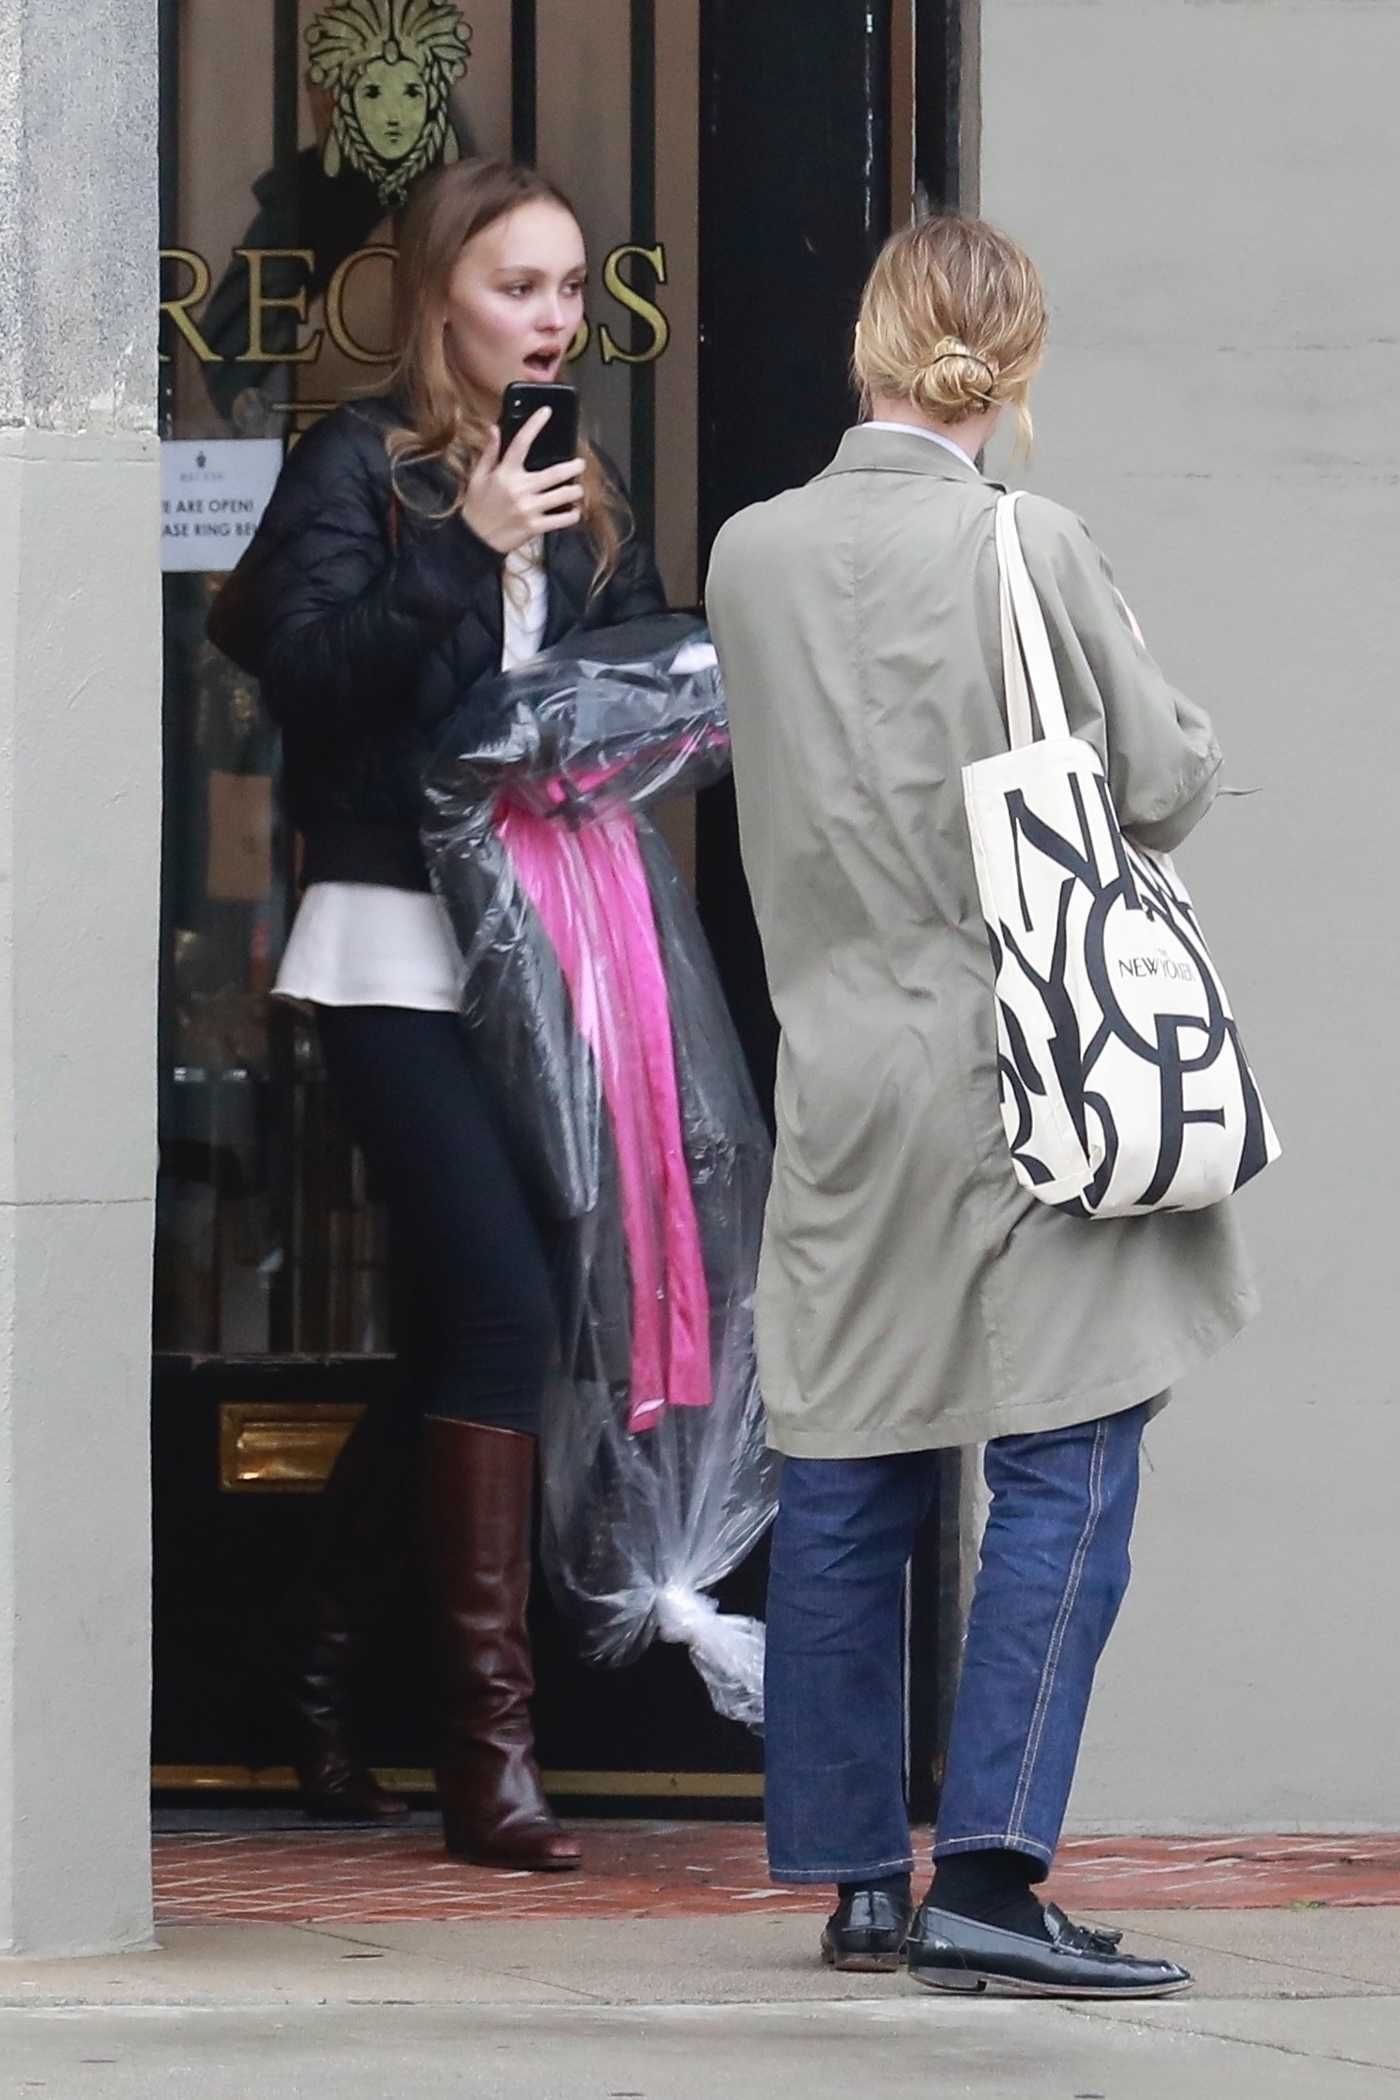 Lily-Rose Depp in a Black Jacket Goes Shopping with a Friend in Los Angeles 02/02/2019